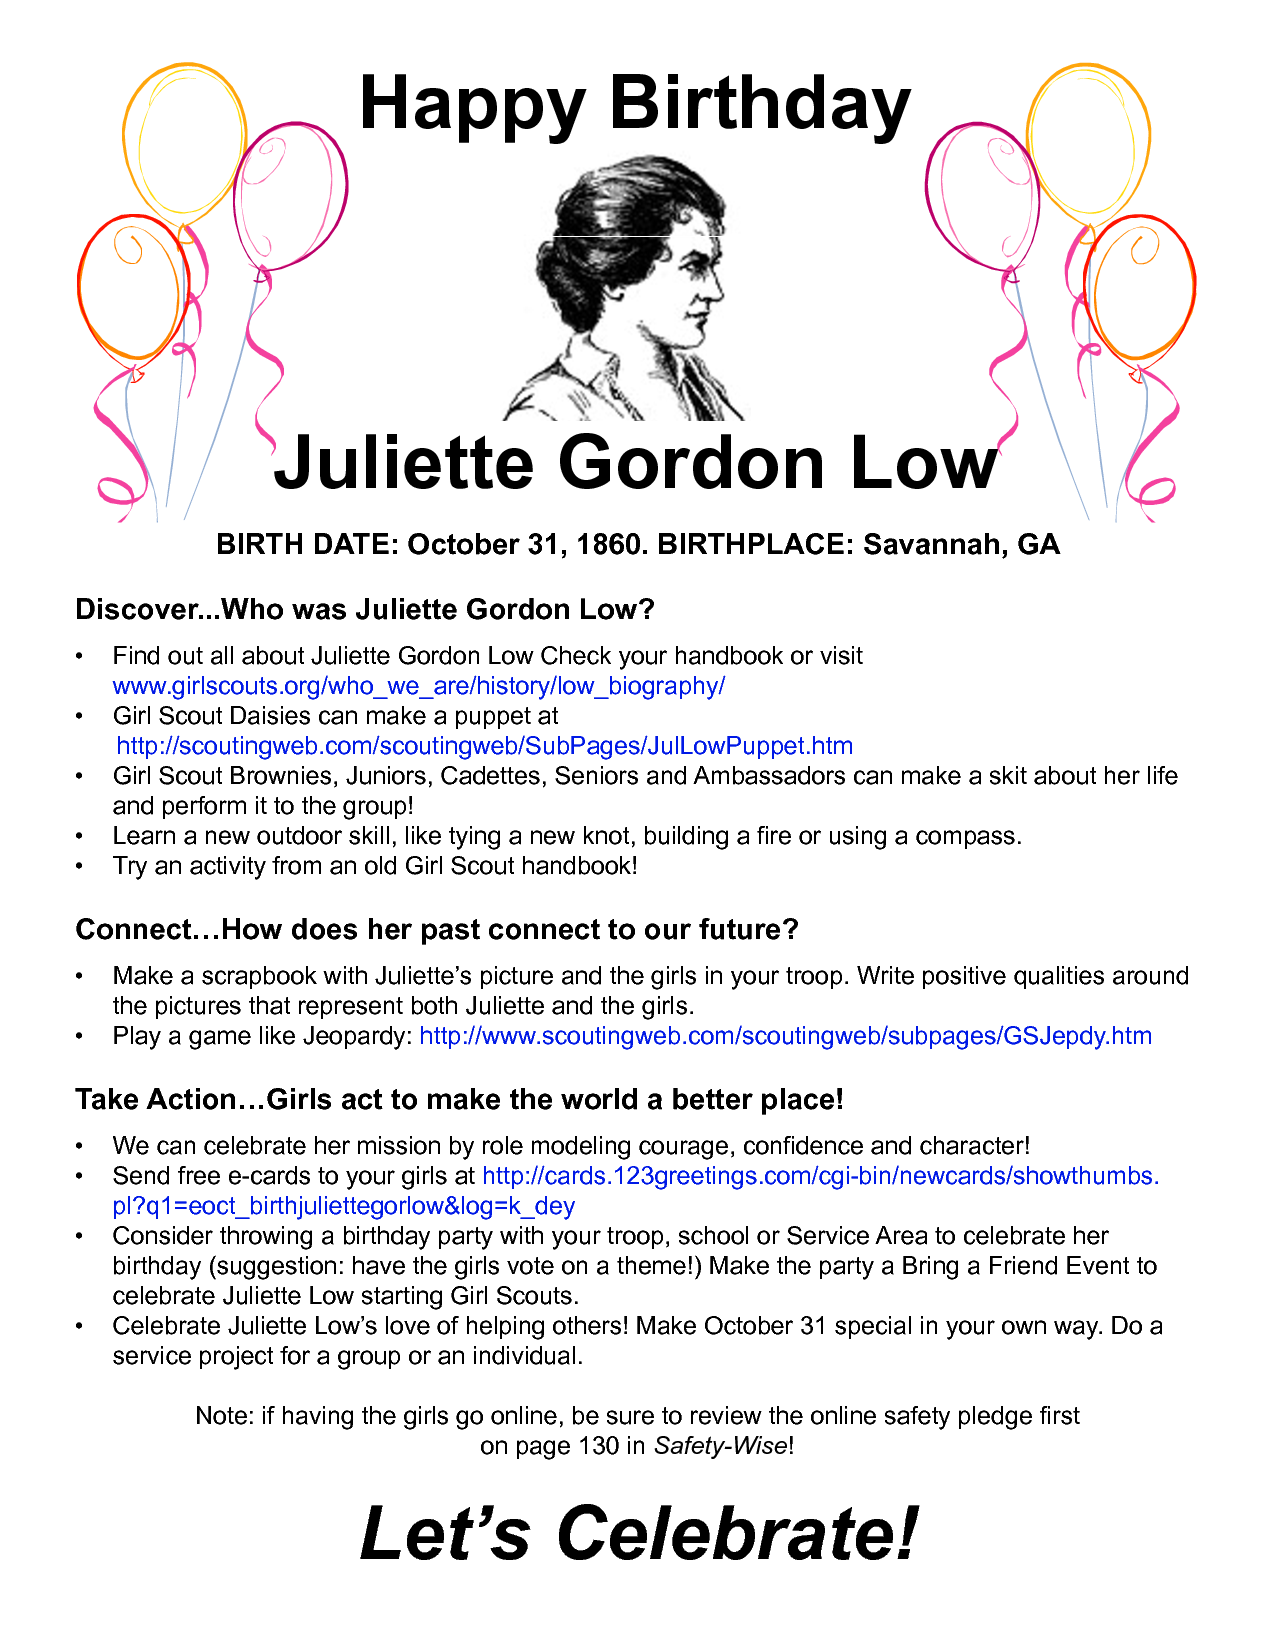 Juliette Gordon Low Birthday Bash - Perfect for the troop that goes ...